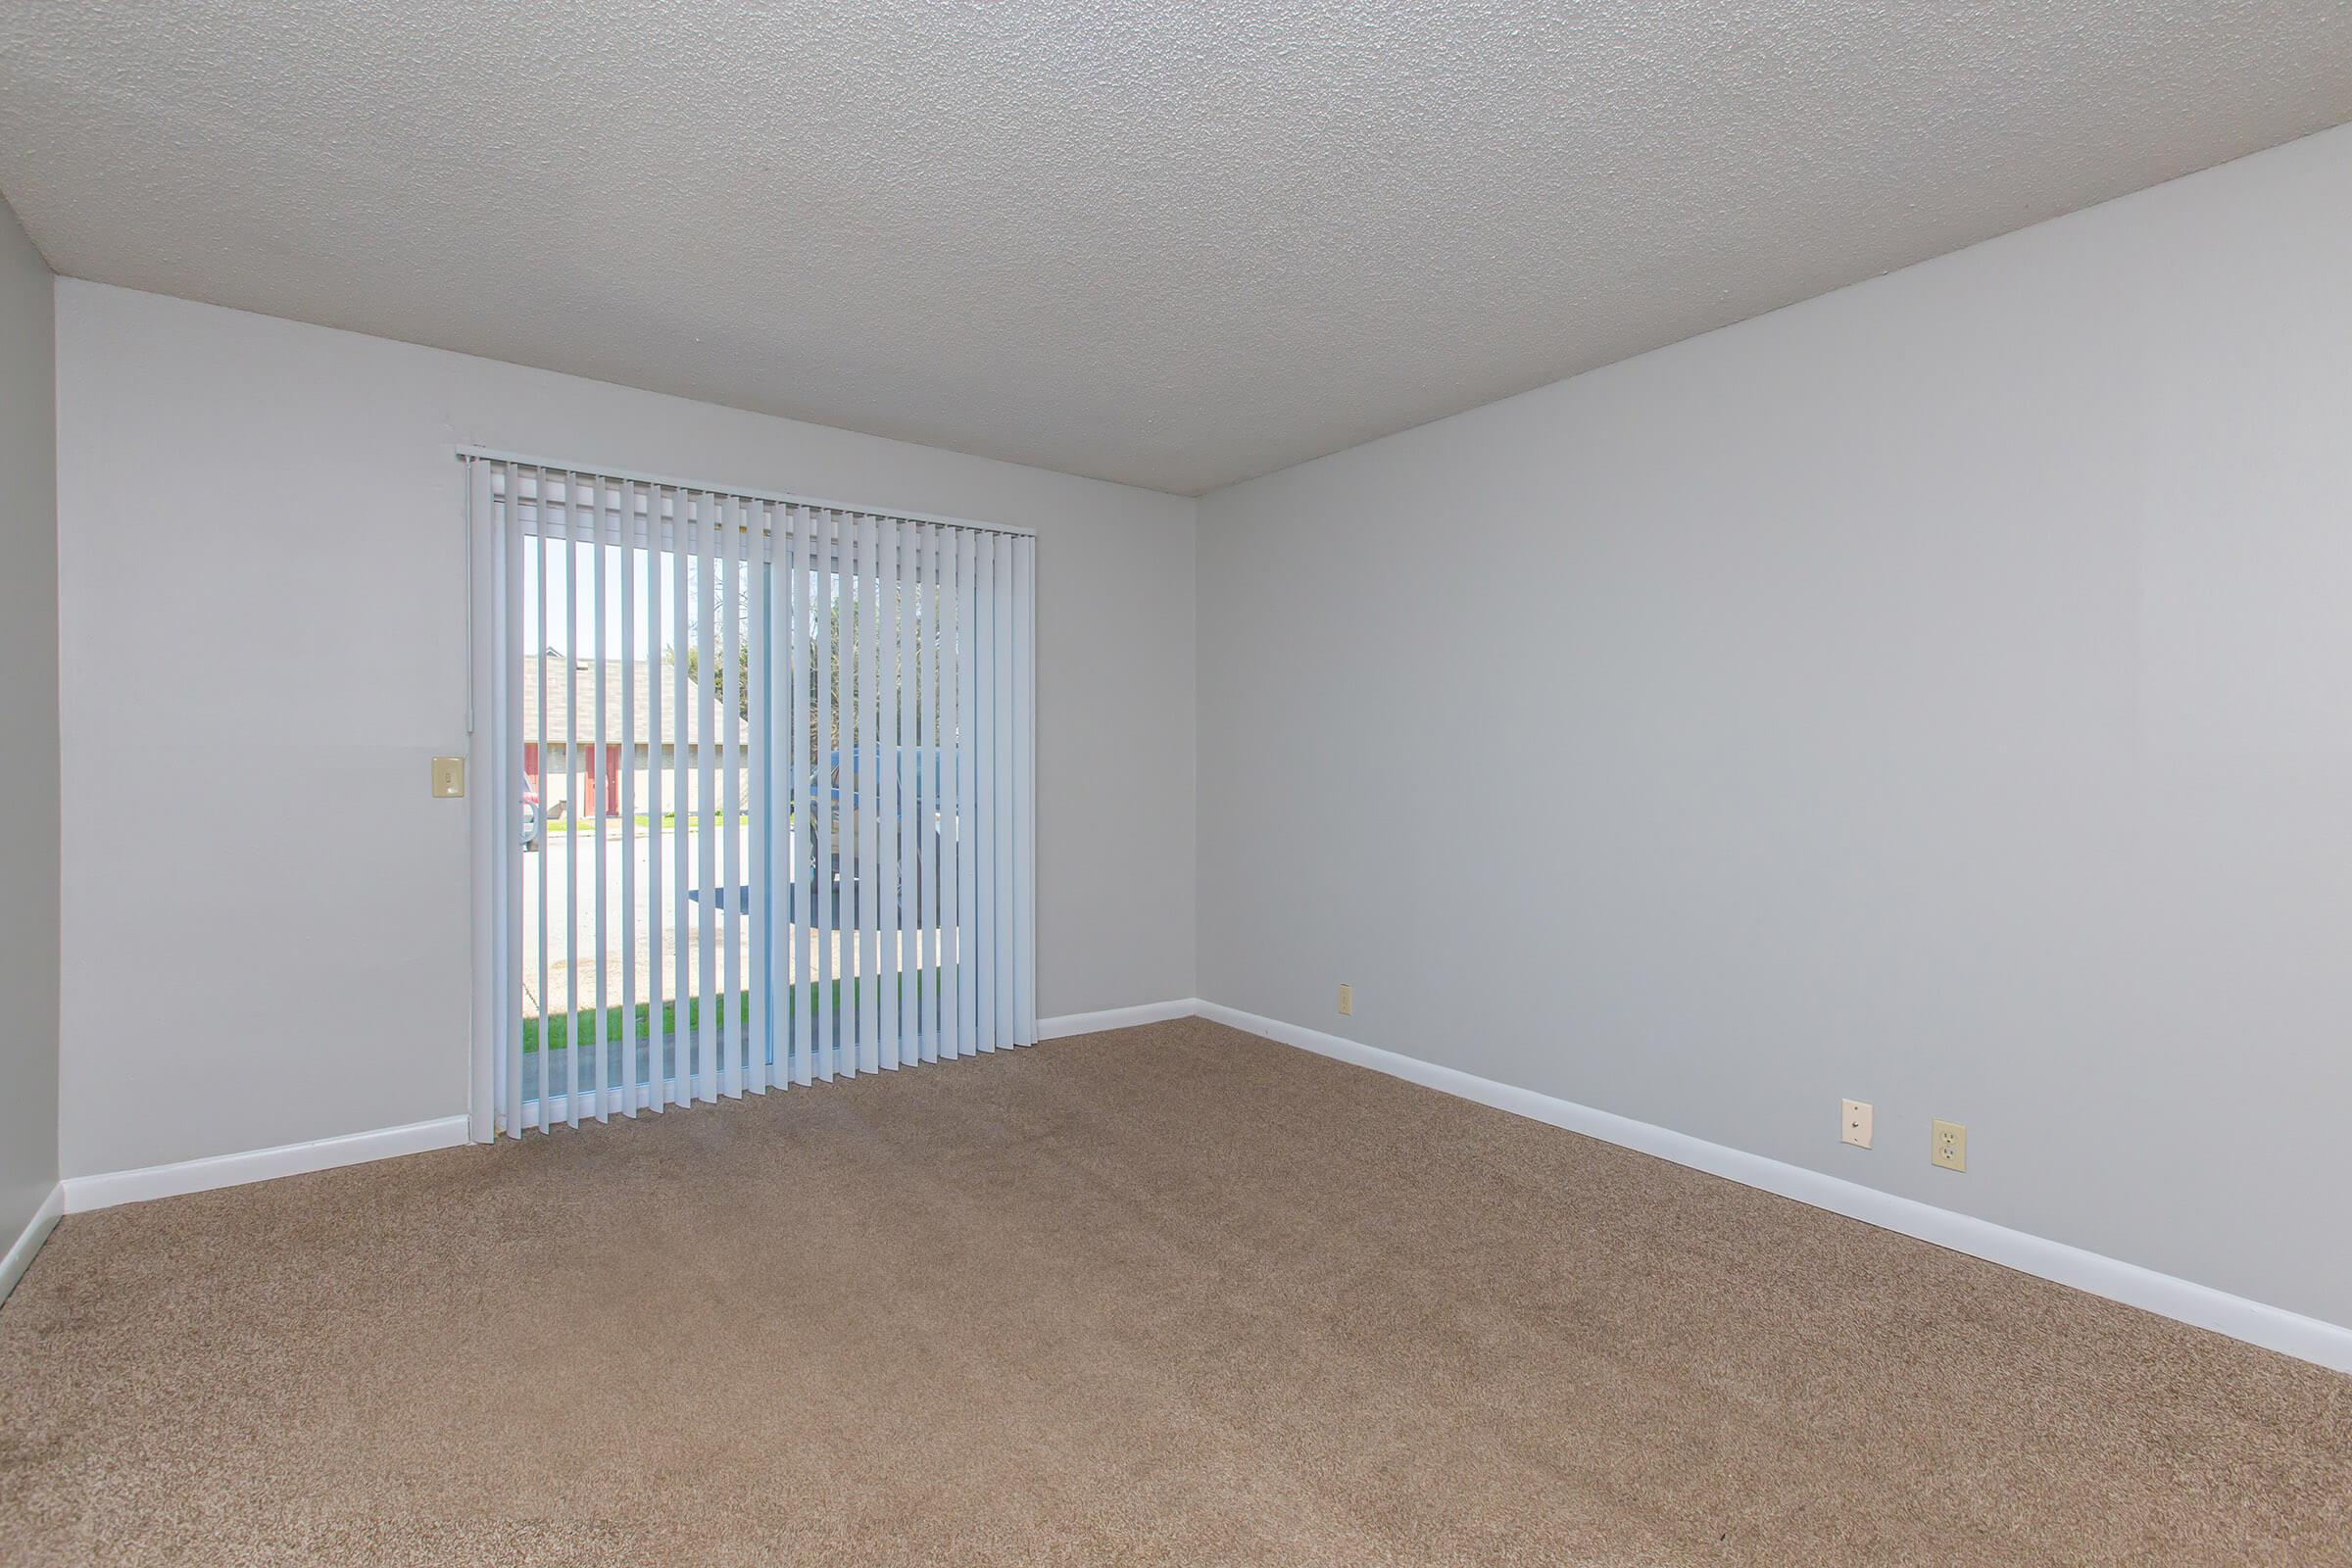 Soft carpeted floors in 2 bedroom apartment for rent